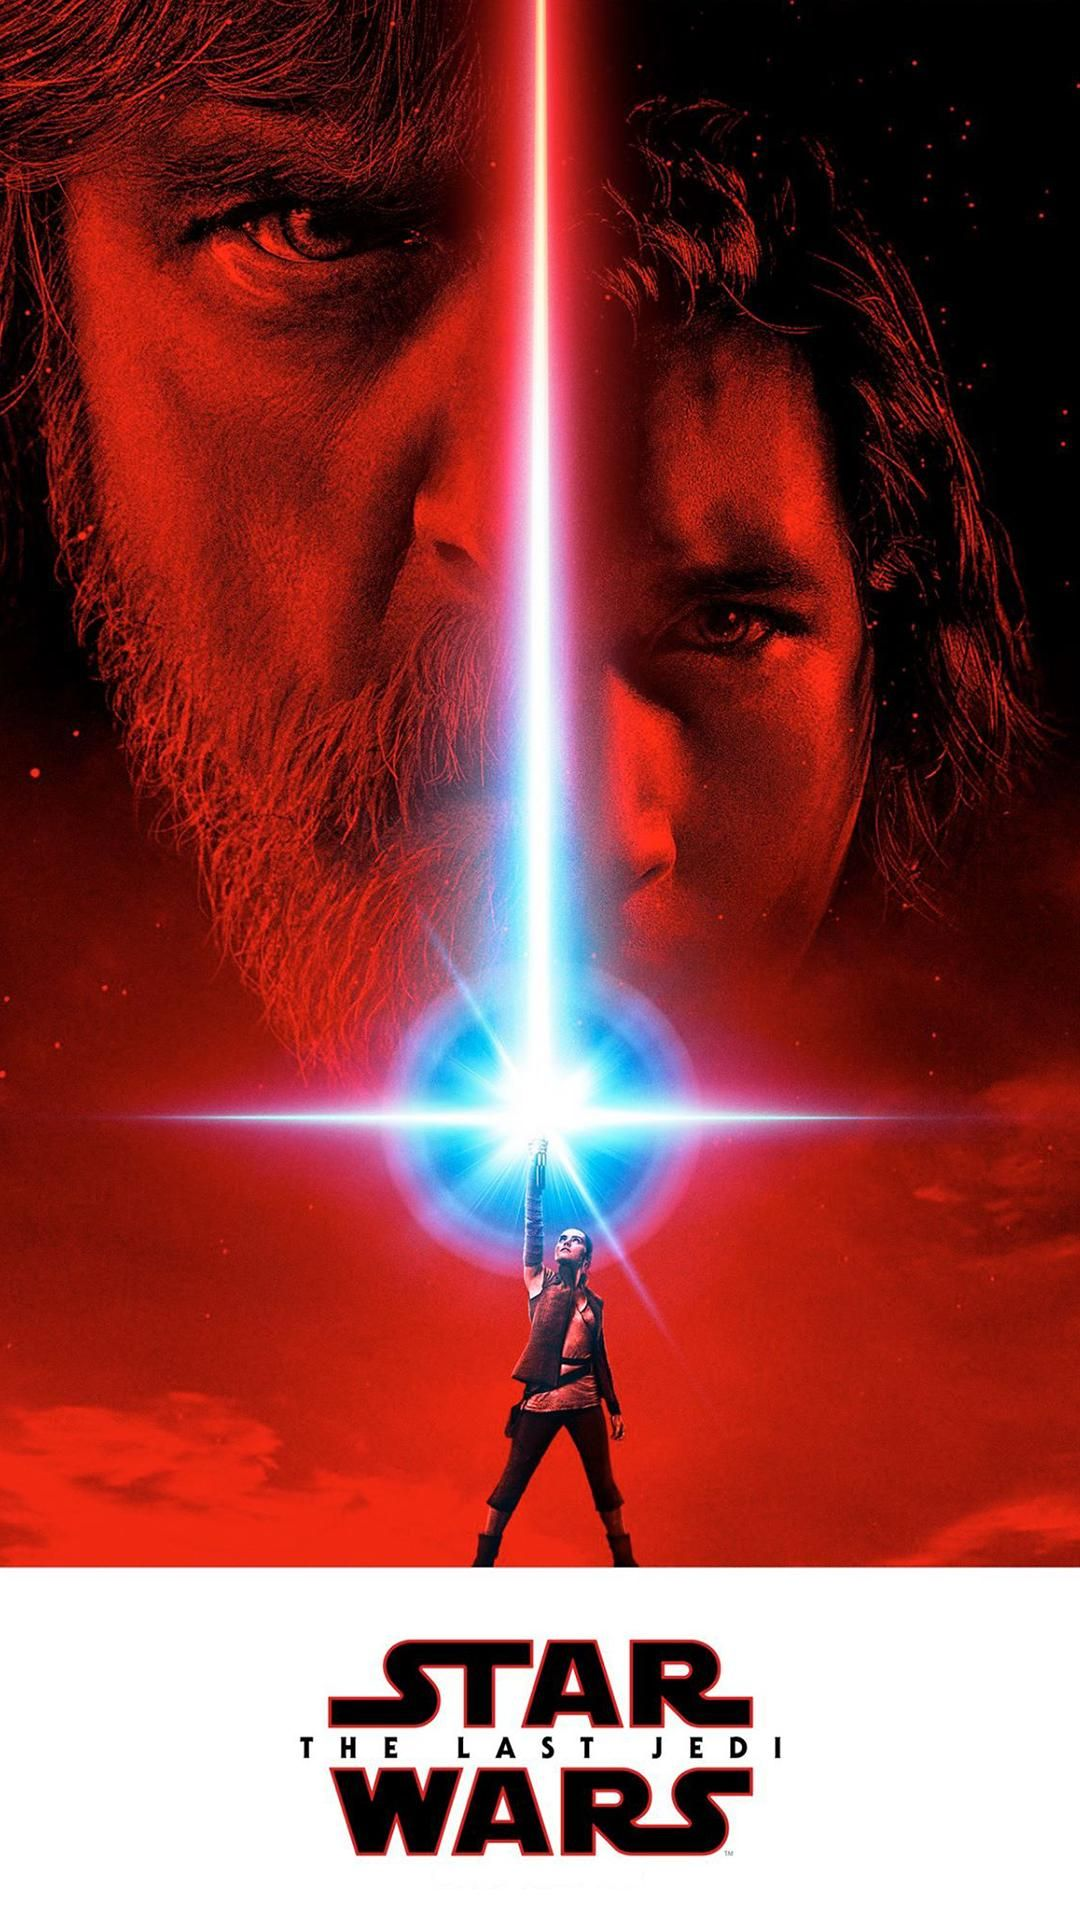 Star Wars - Episode VIII: The Last Jedi [1080x1920] Need #iPhone #